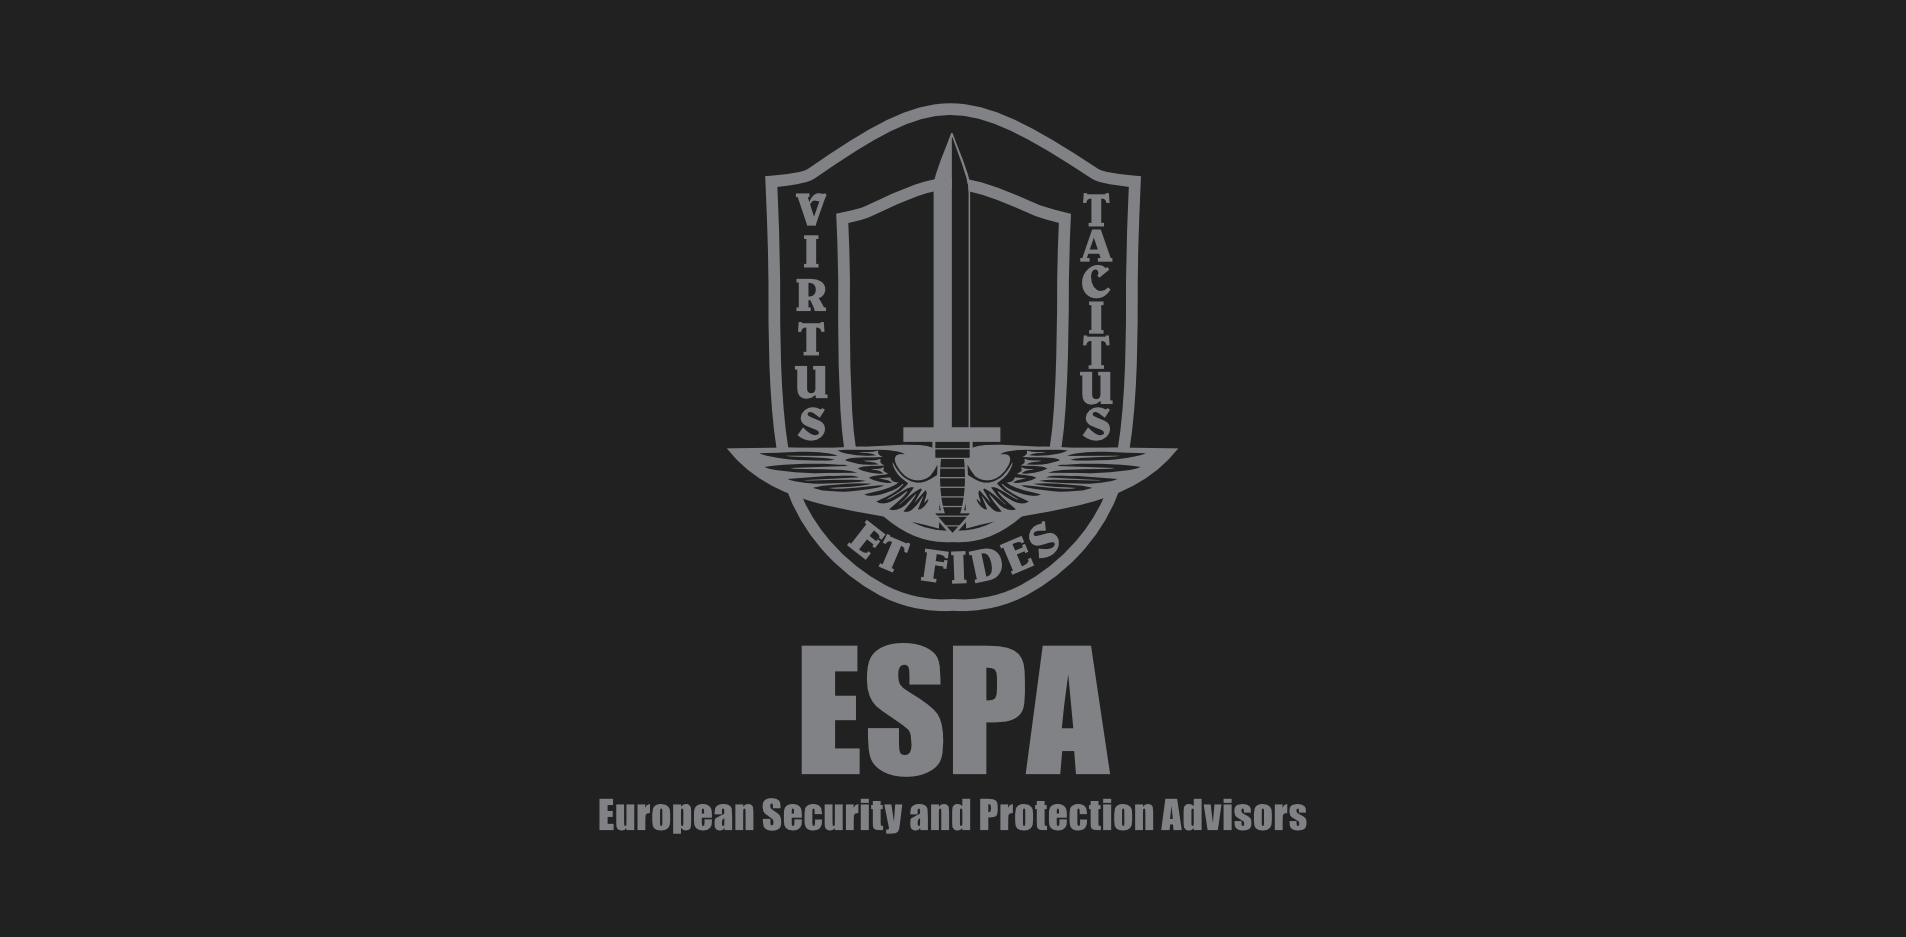 ESPA Securitty